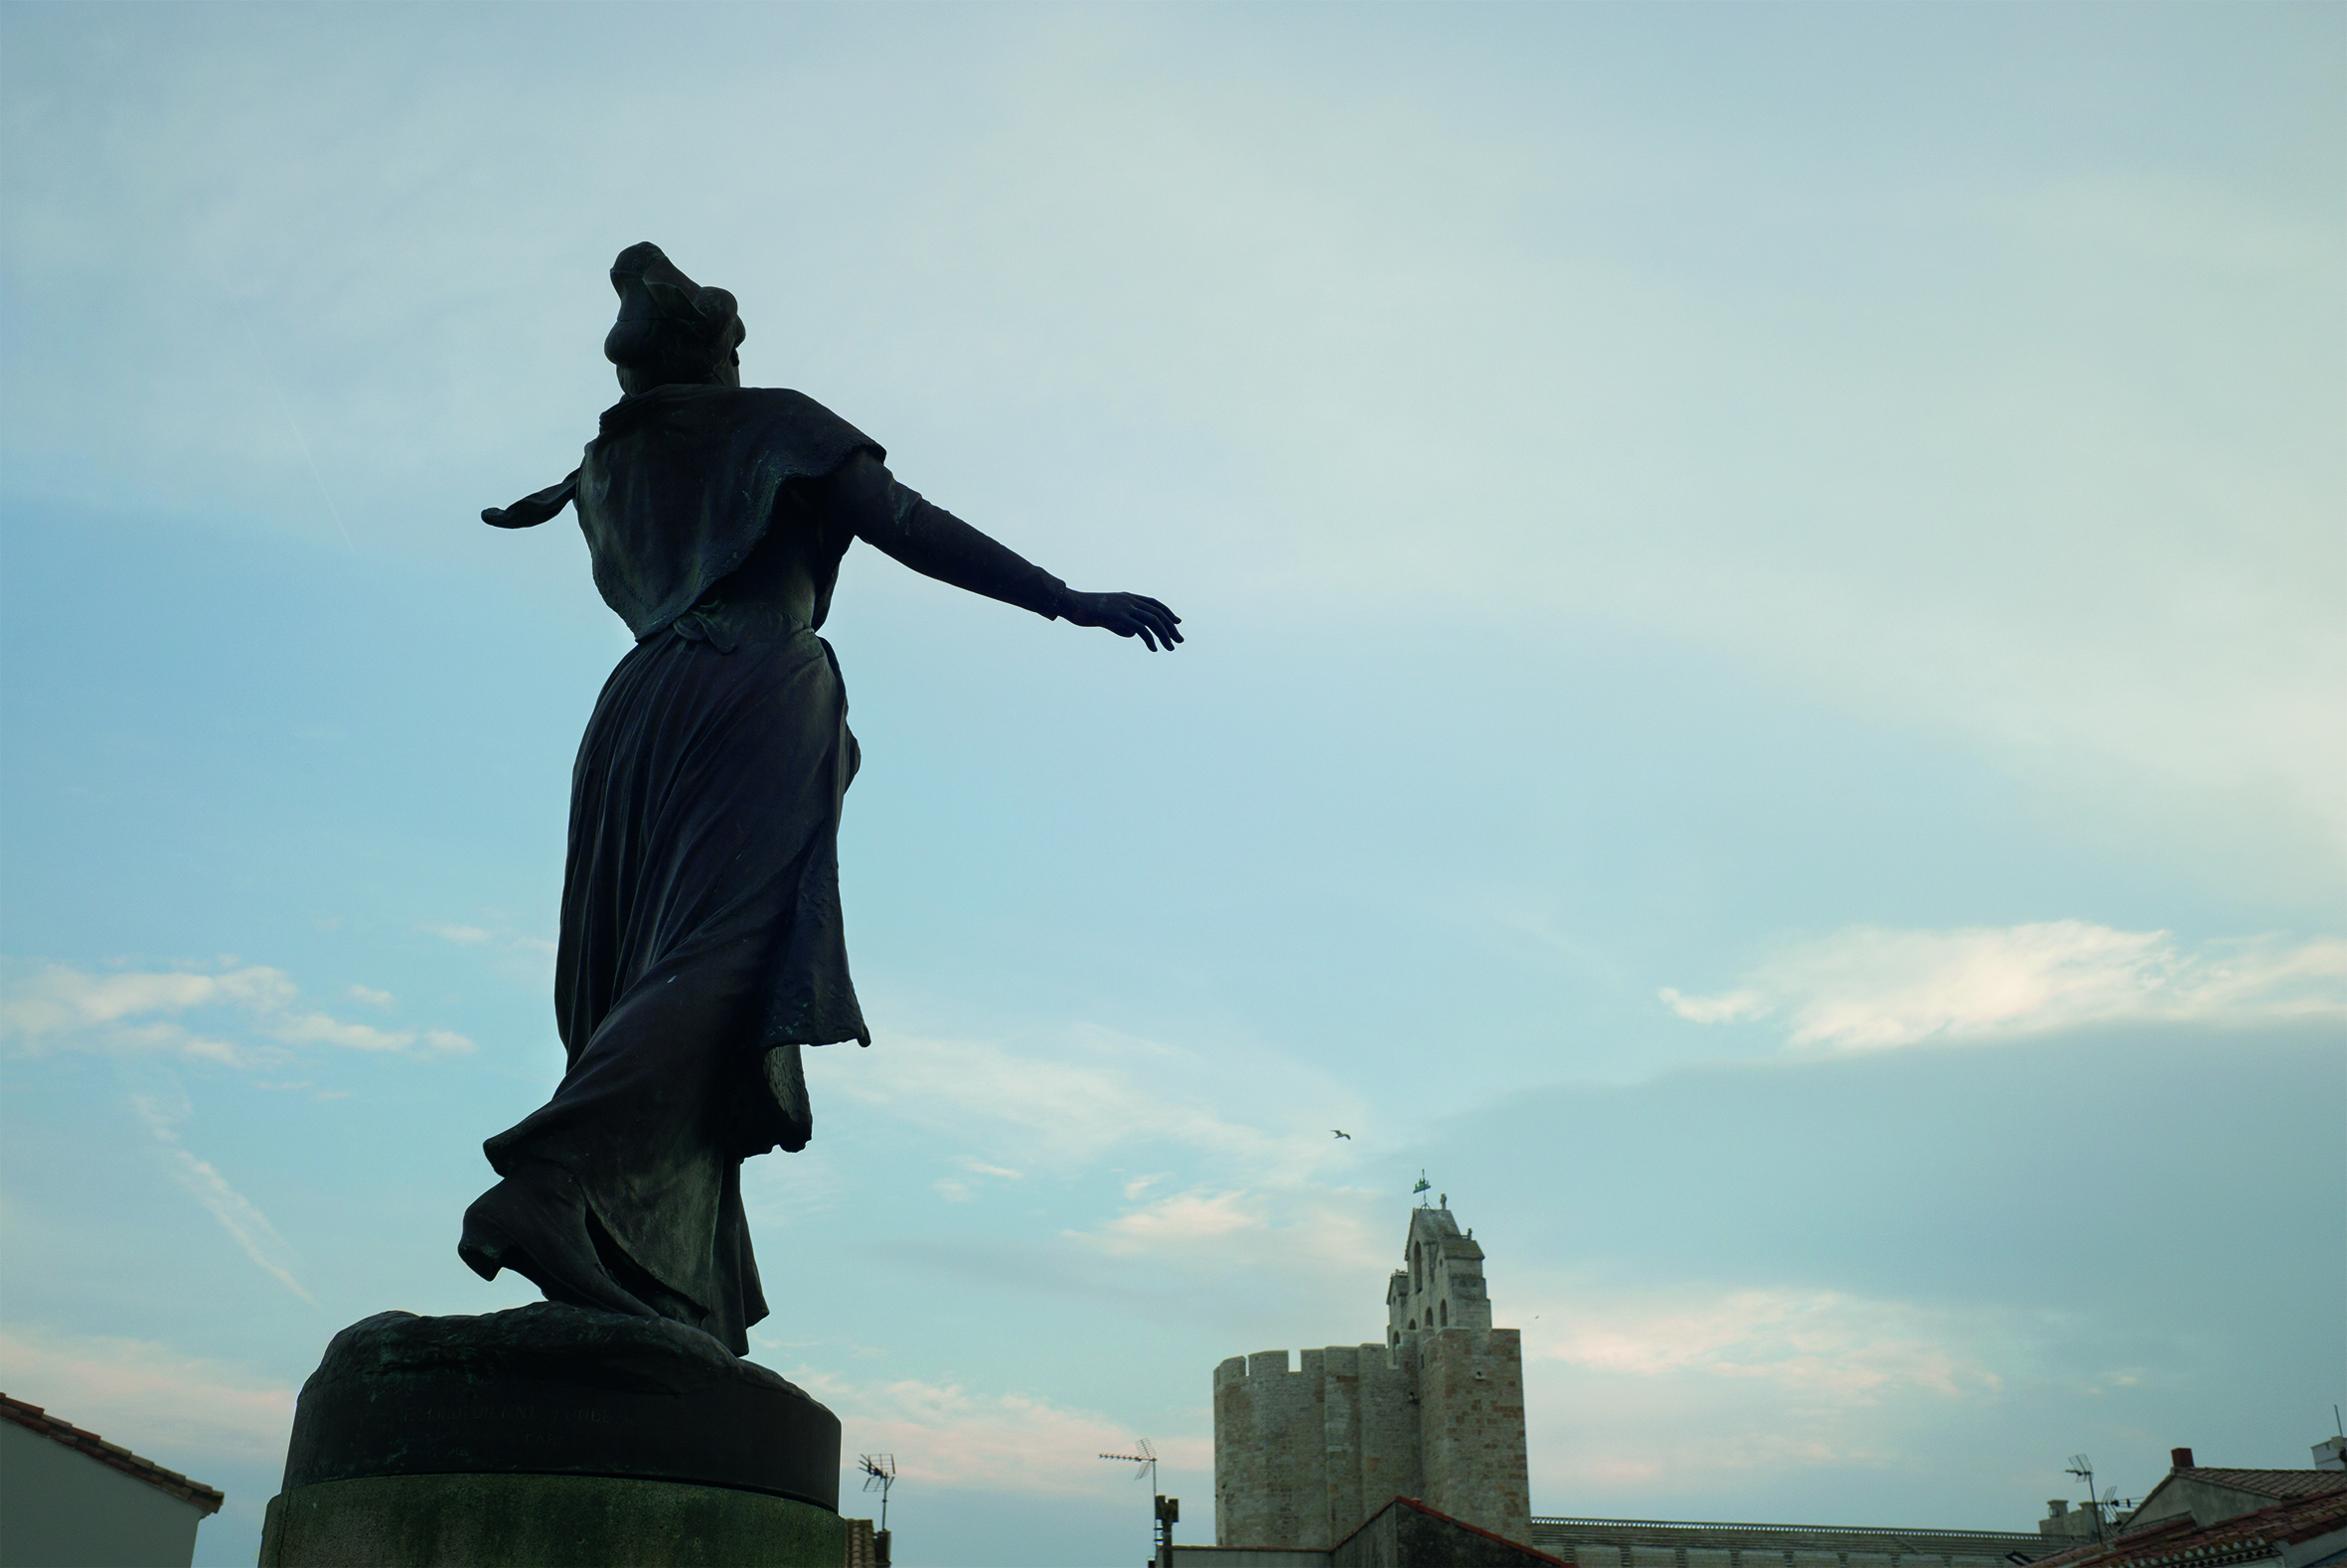 In the village of Saintes-Maries-de-la-Mer, at the edge of the Camargue, stands in a statue of a windswept Mireille, the heroine of Frederic Mistral's epic poem of that name. © Rachel Cobb. Courtesy of Damiani.